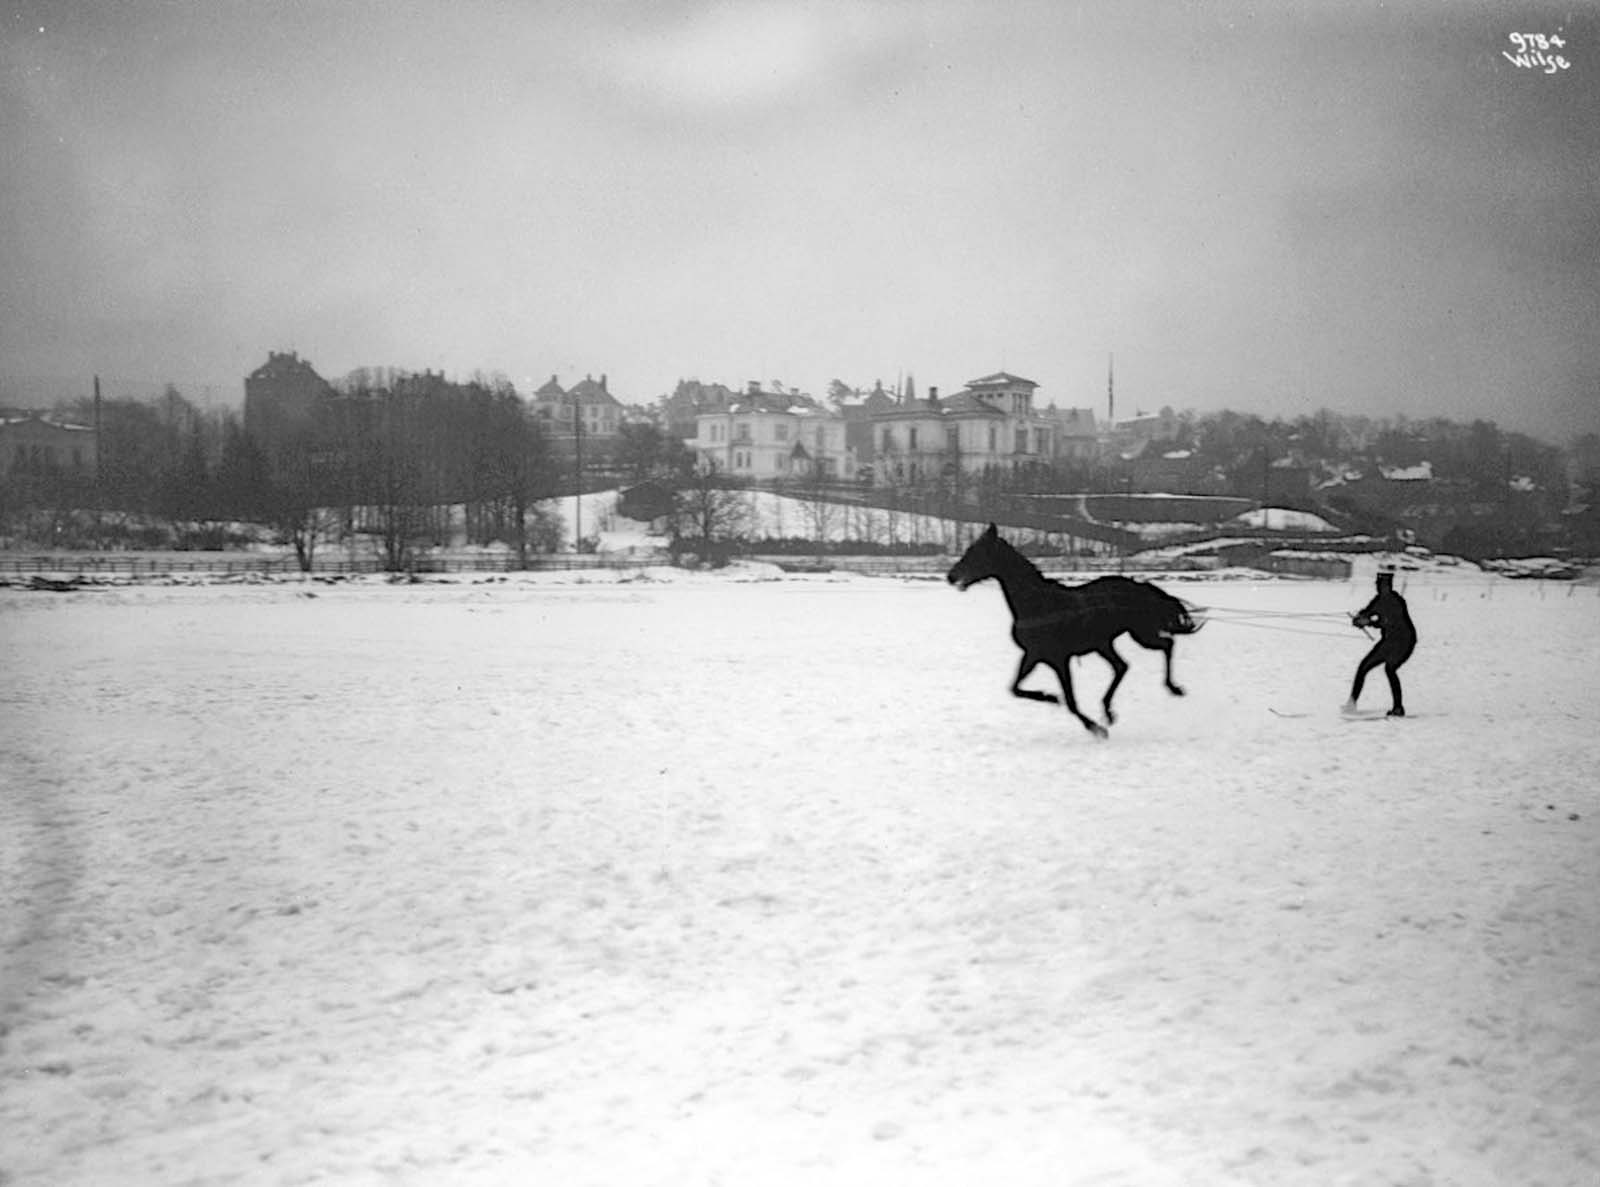 Skijoring is derived from the Norwegian word skikjøring, meaning